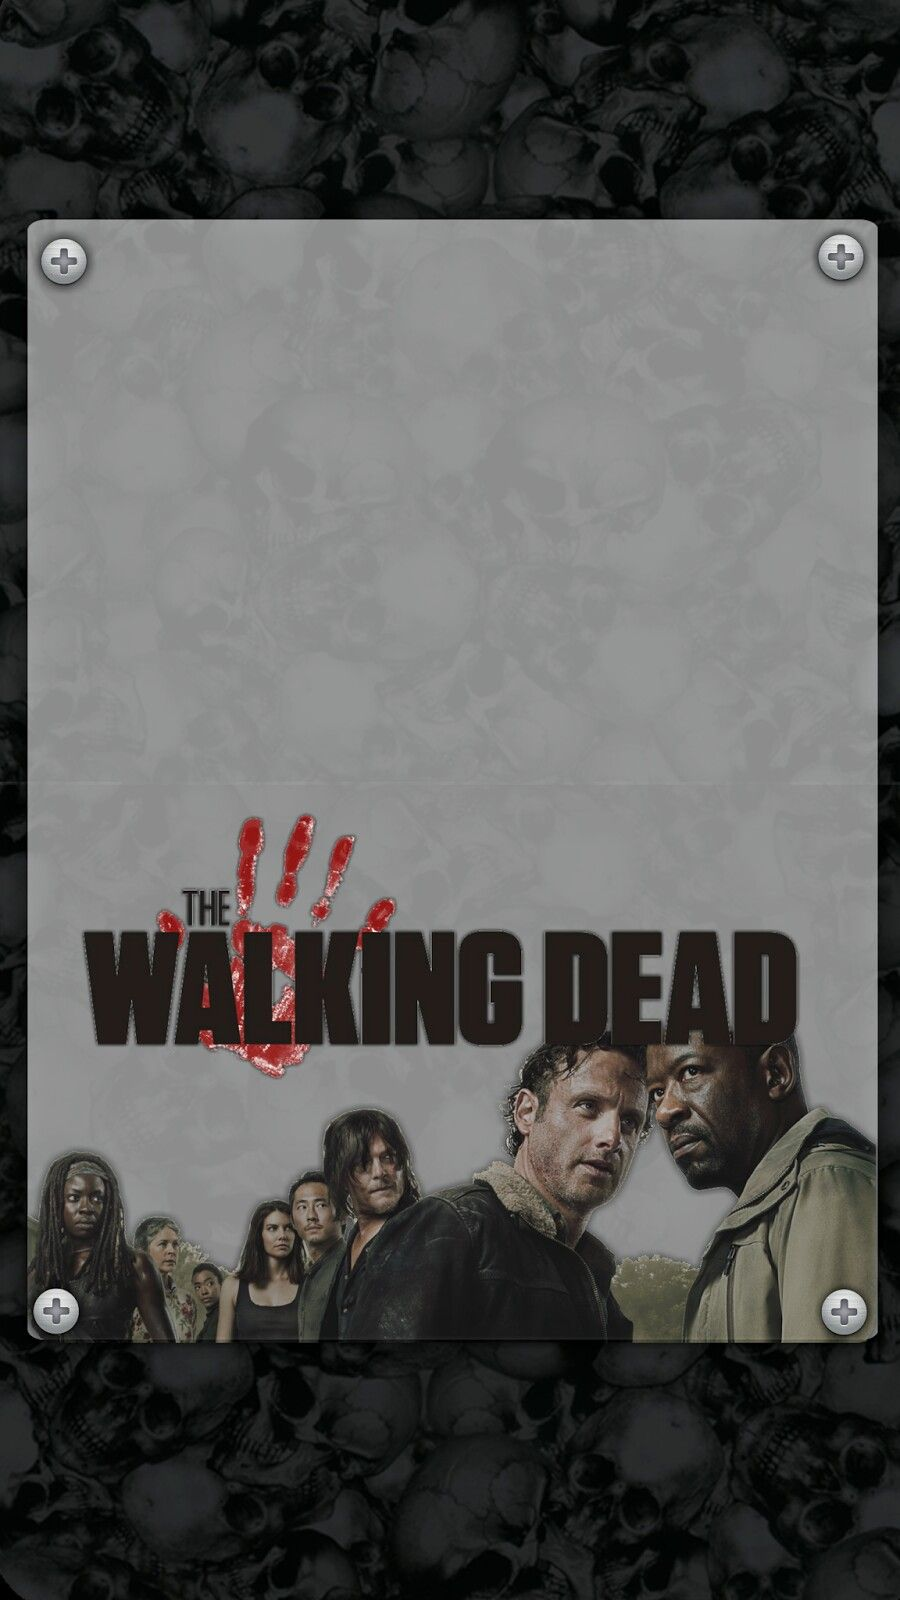 Pin By Nikkladesigns On The Walking Dead Wallpaper Halloween